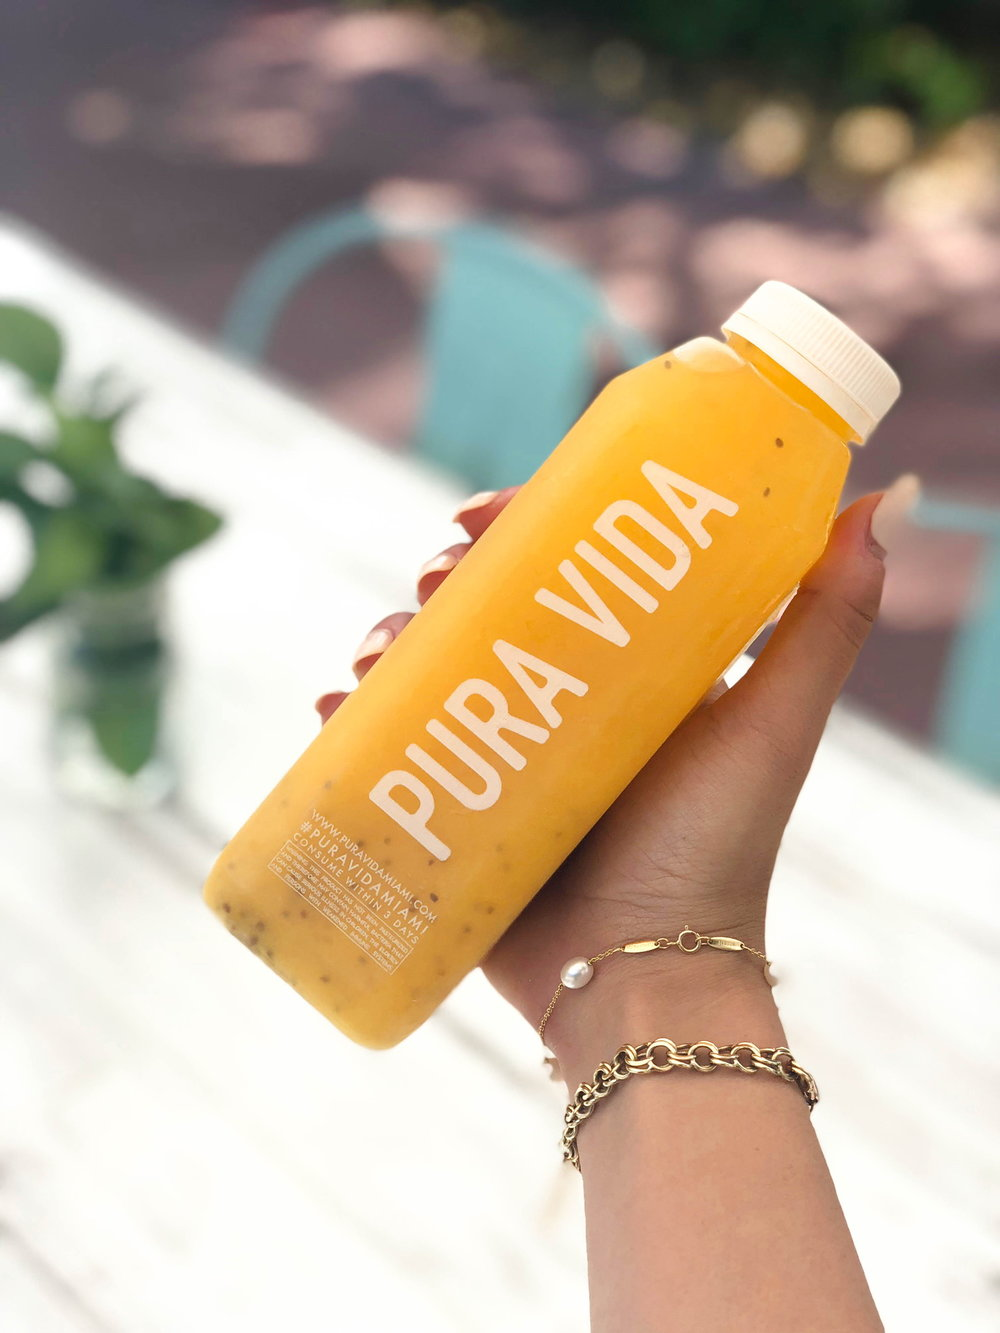 FRESHLY MADE JUICES - good for the soul and your tastebuds too. Made fresh daily, we make our juices in house with our locally sourced fresh fruits and veggies. cheers!